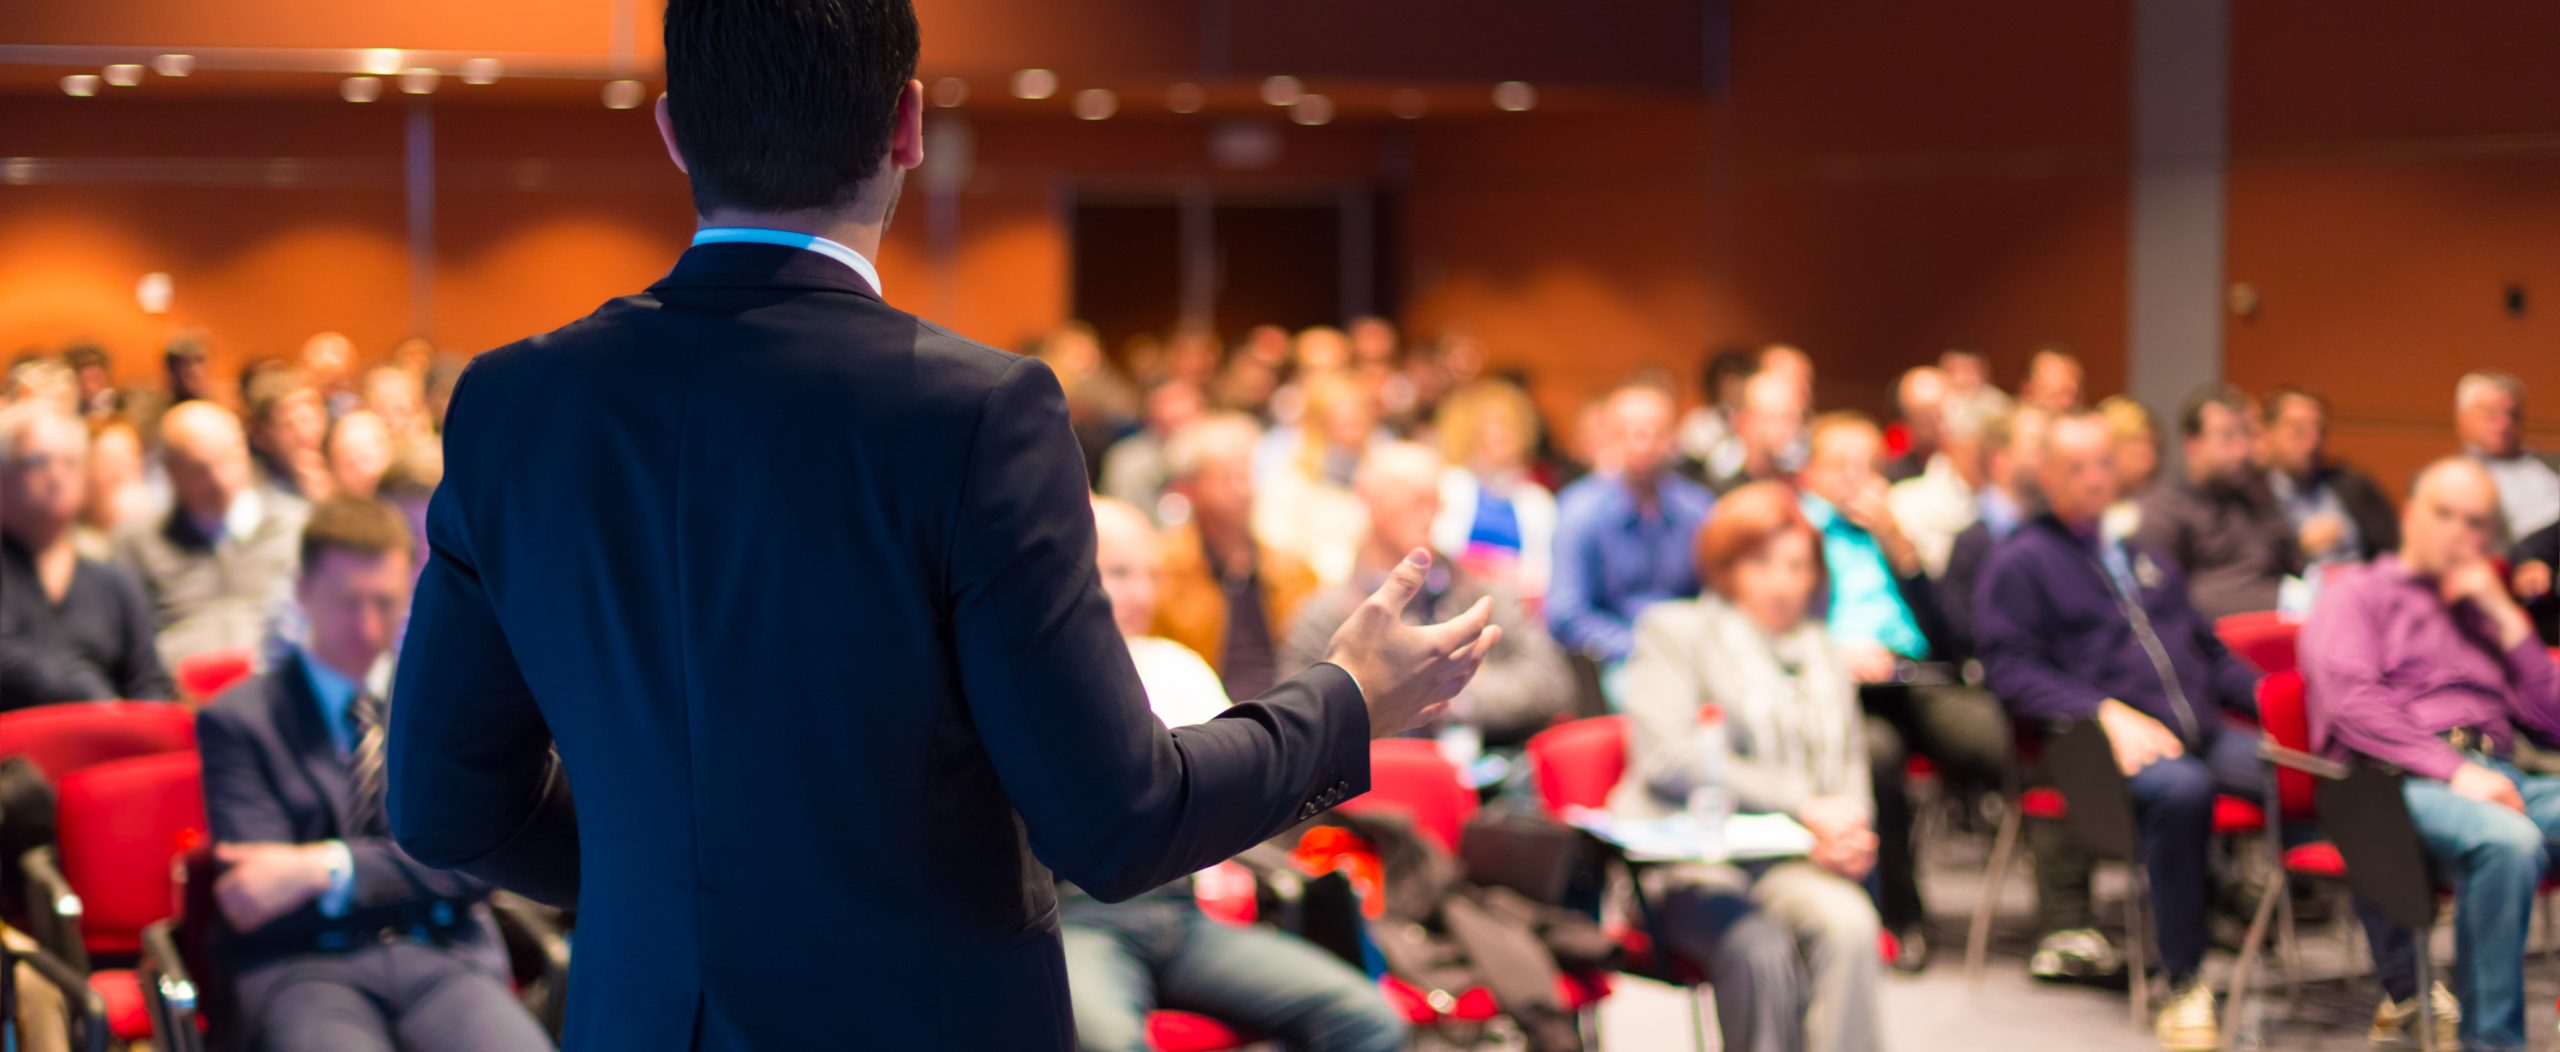 A Speaker in a Conference